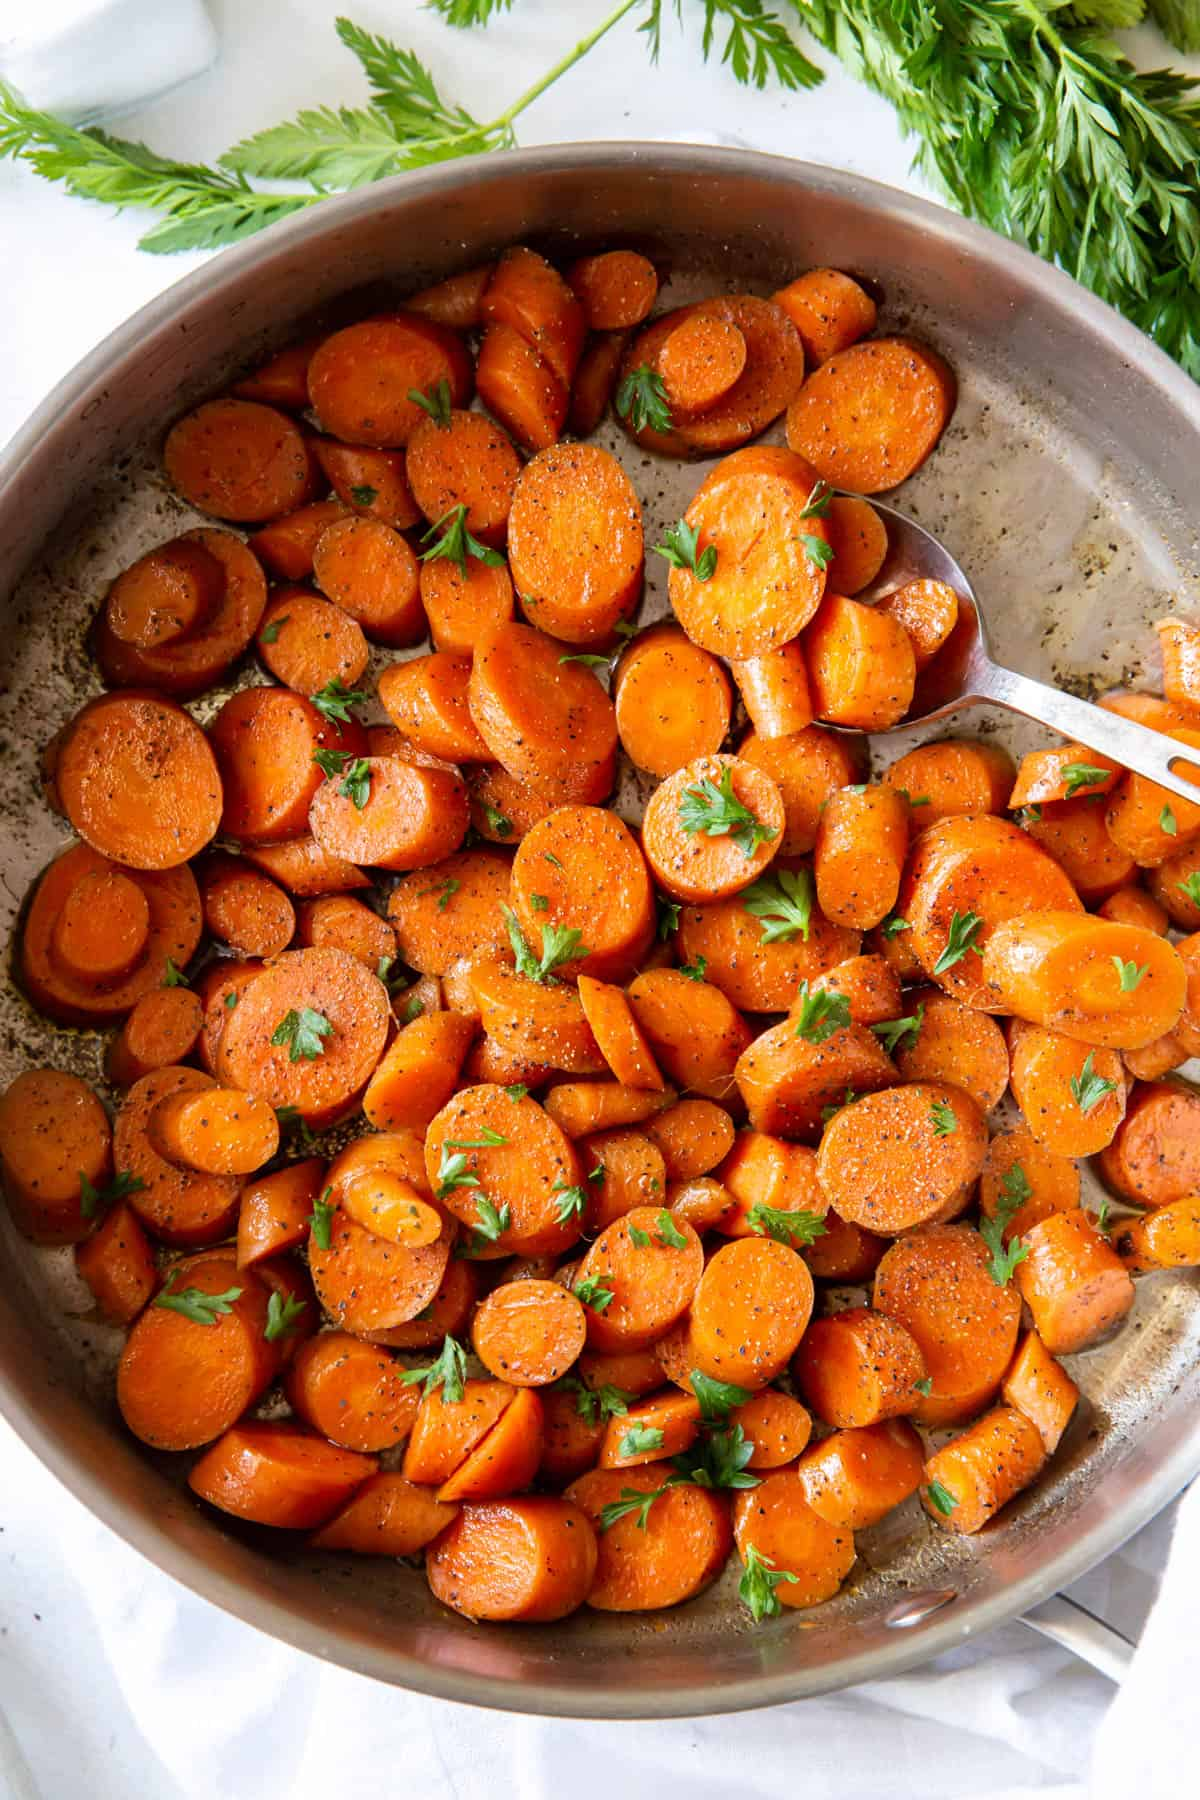 Sauteed carrots topped with parsley in a silver pan